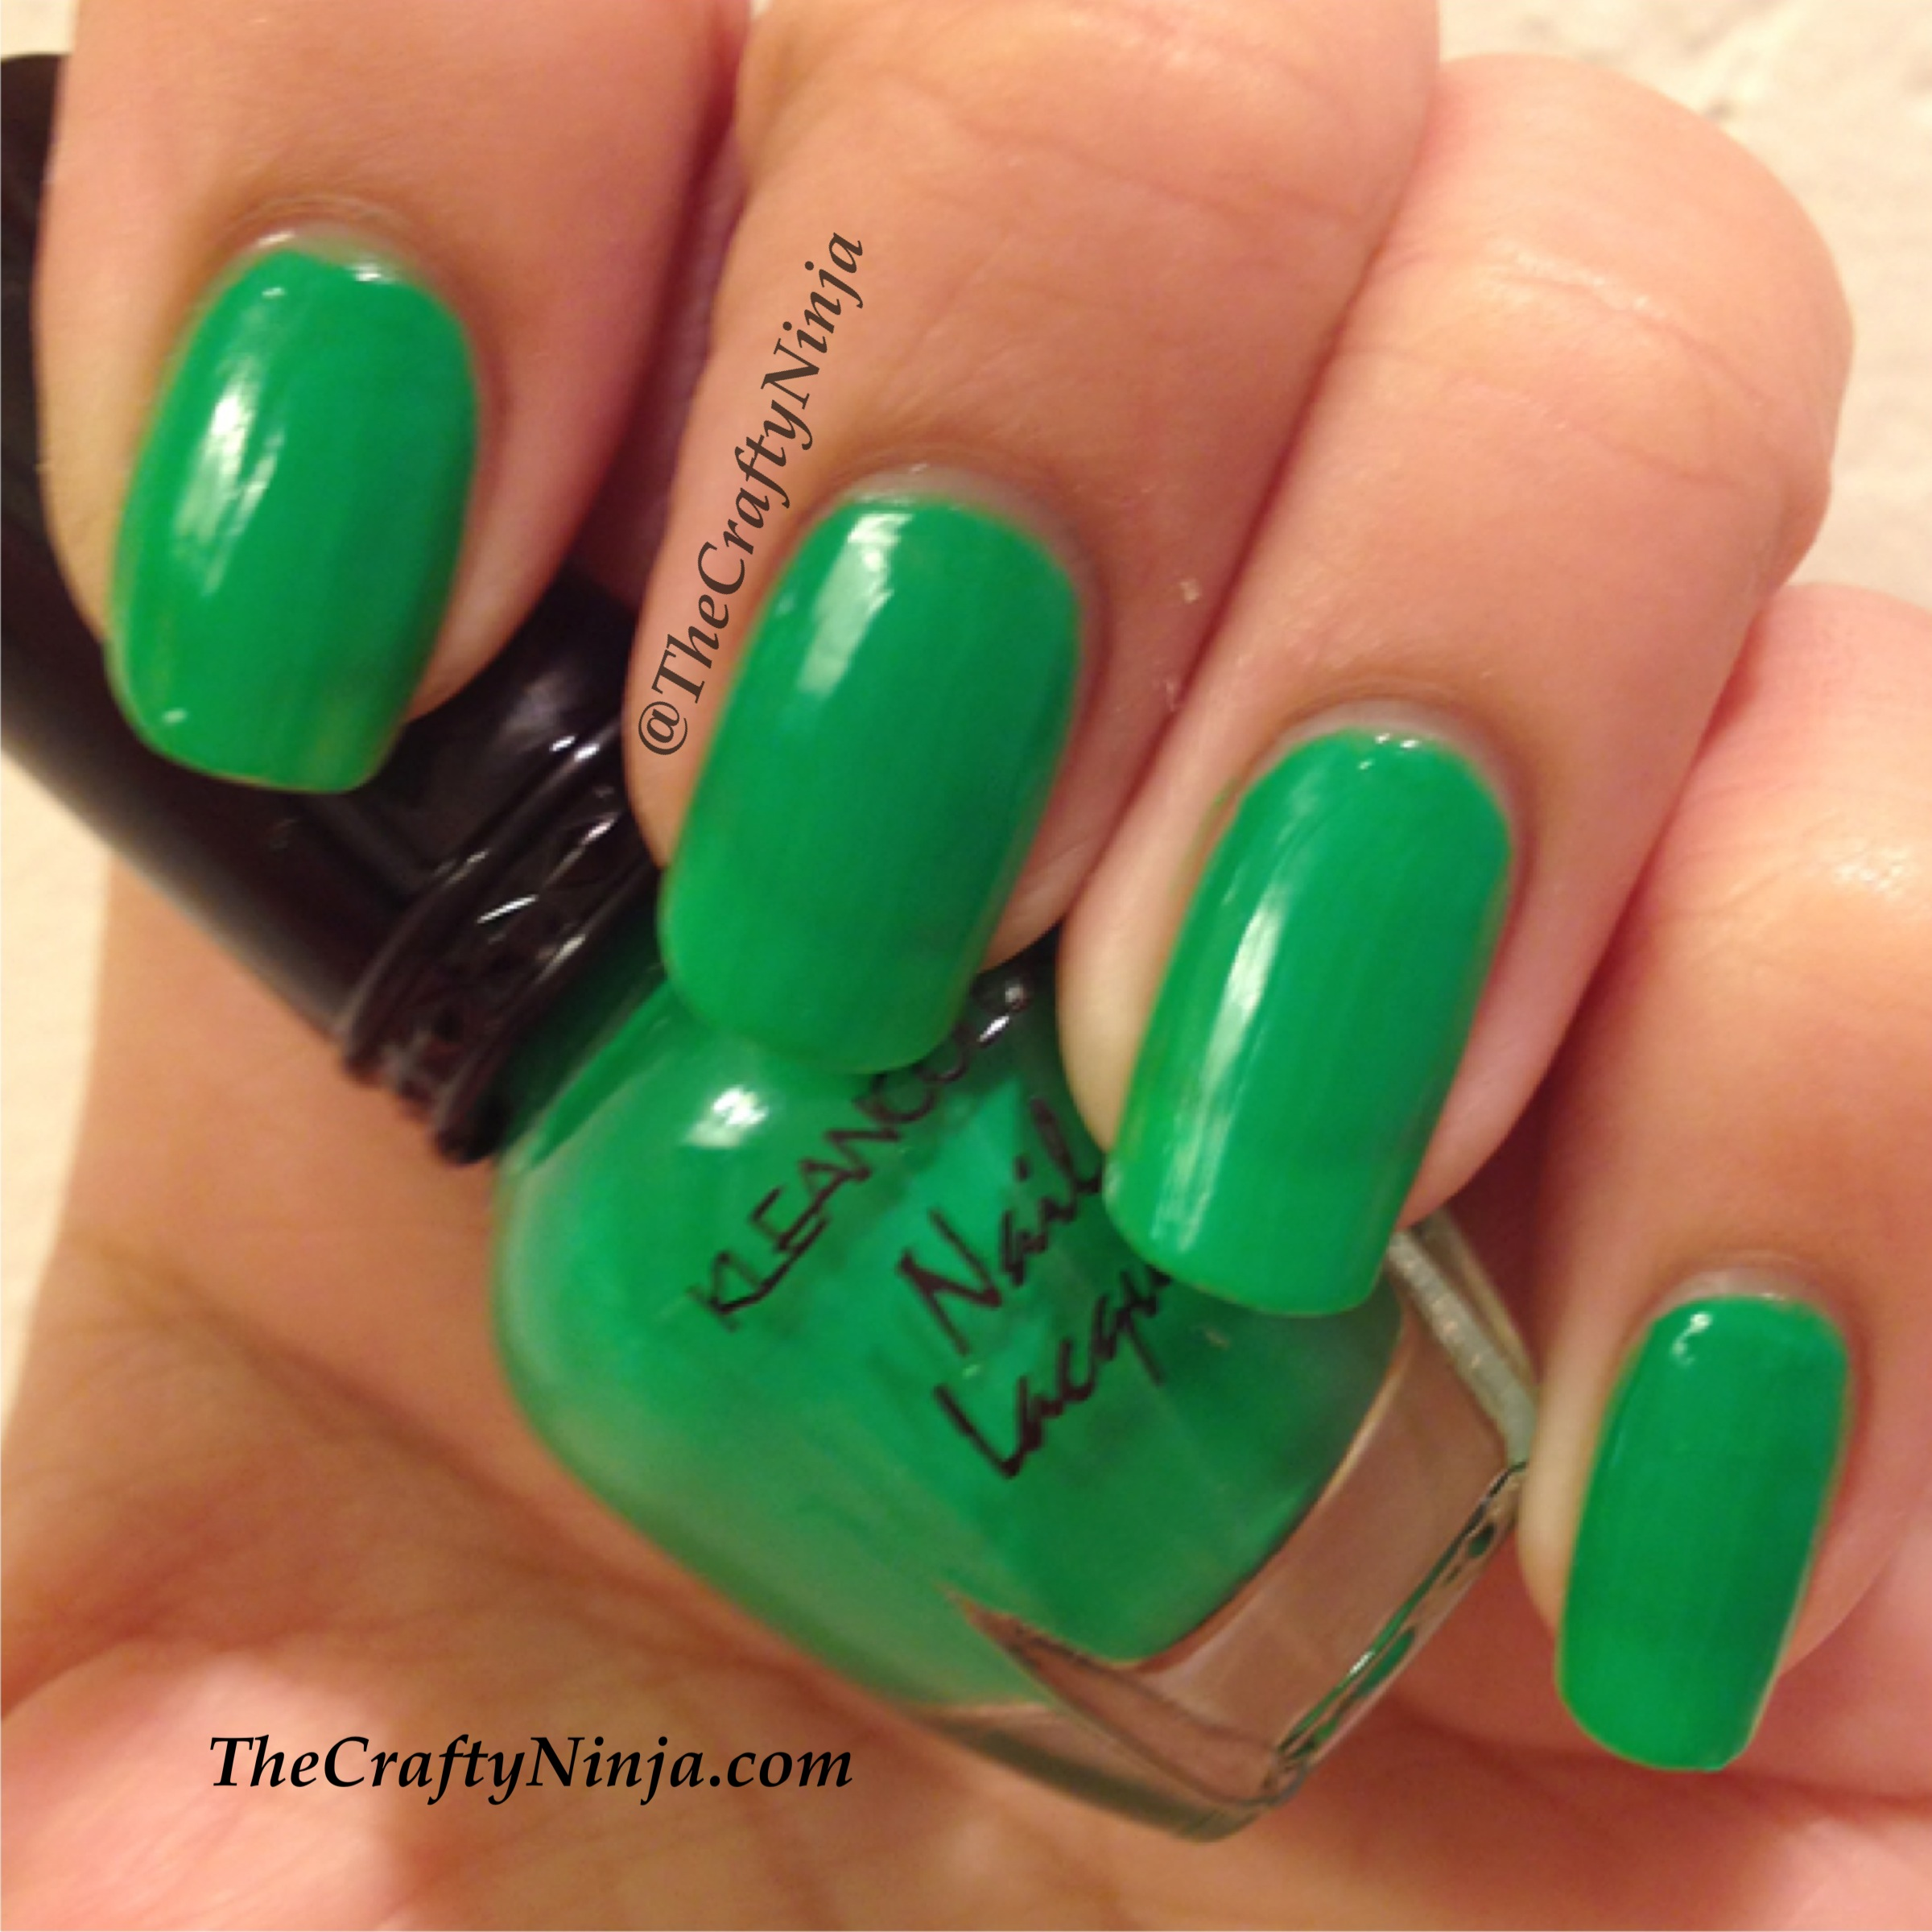 OPI Neon Revolution Minis - Of Life and Lacquer |Neon Blue Nails